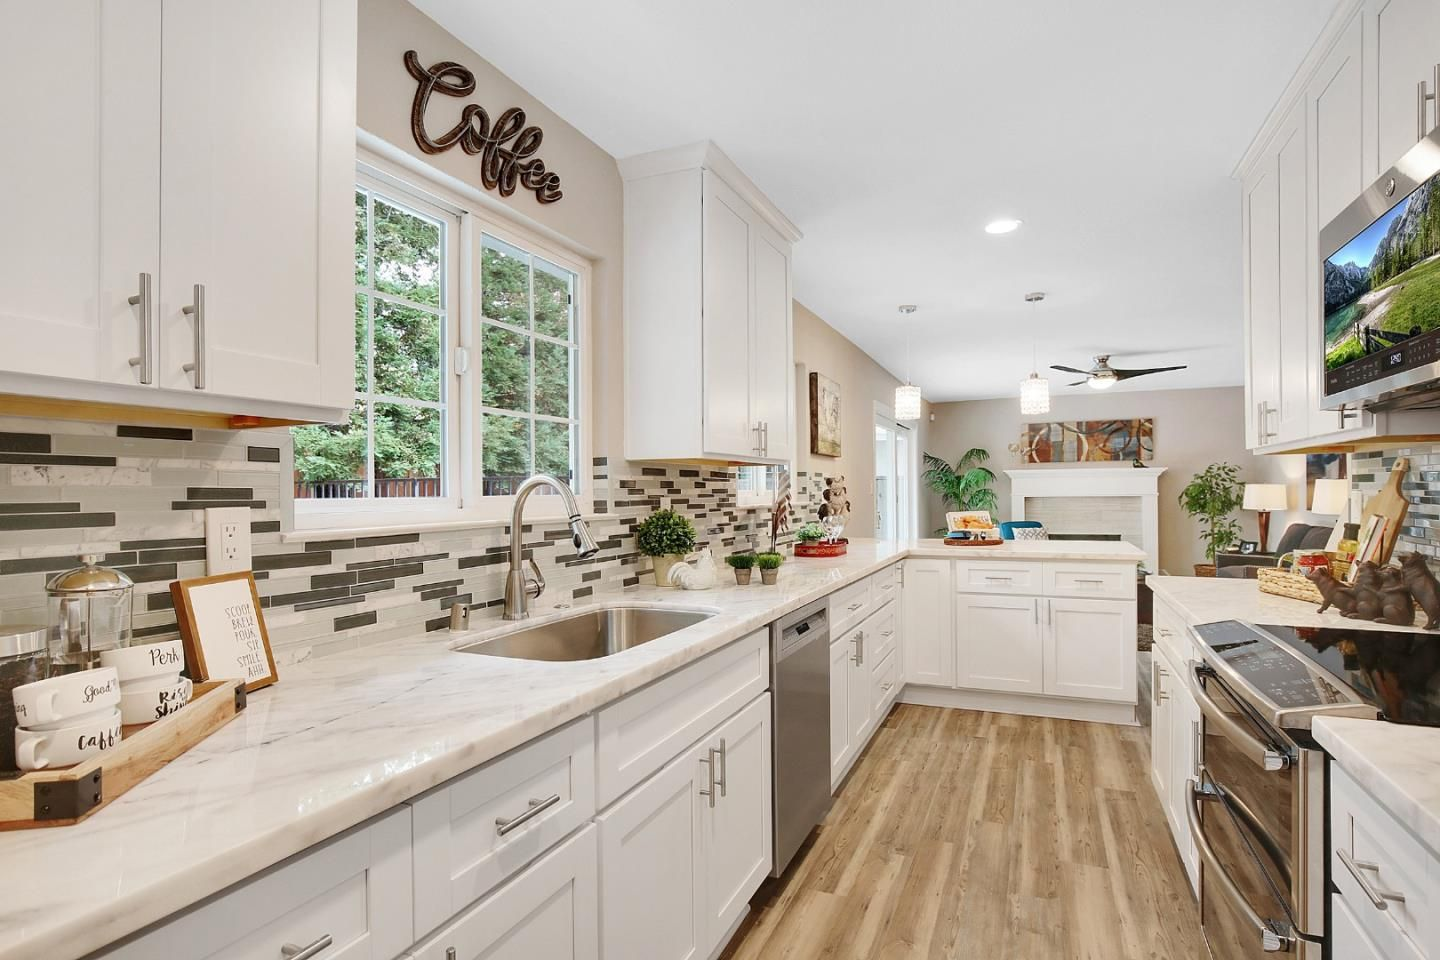 3657 Olympic Ct Pleasanton Ca With Images Kitchen Cabinets Pleasanton Home Decor